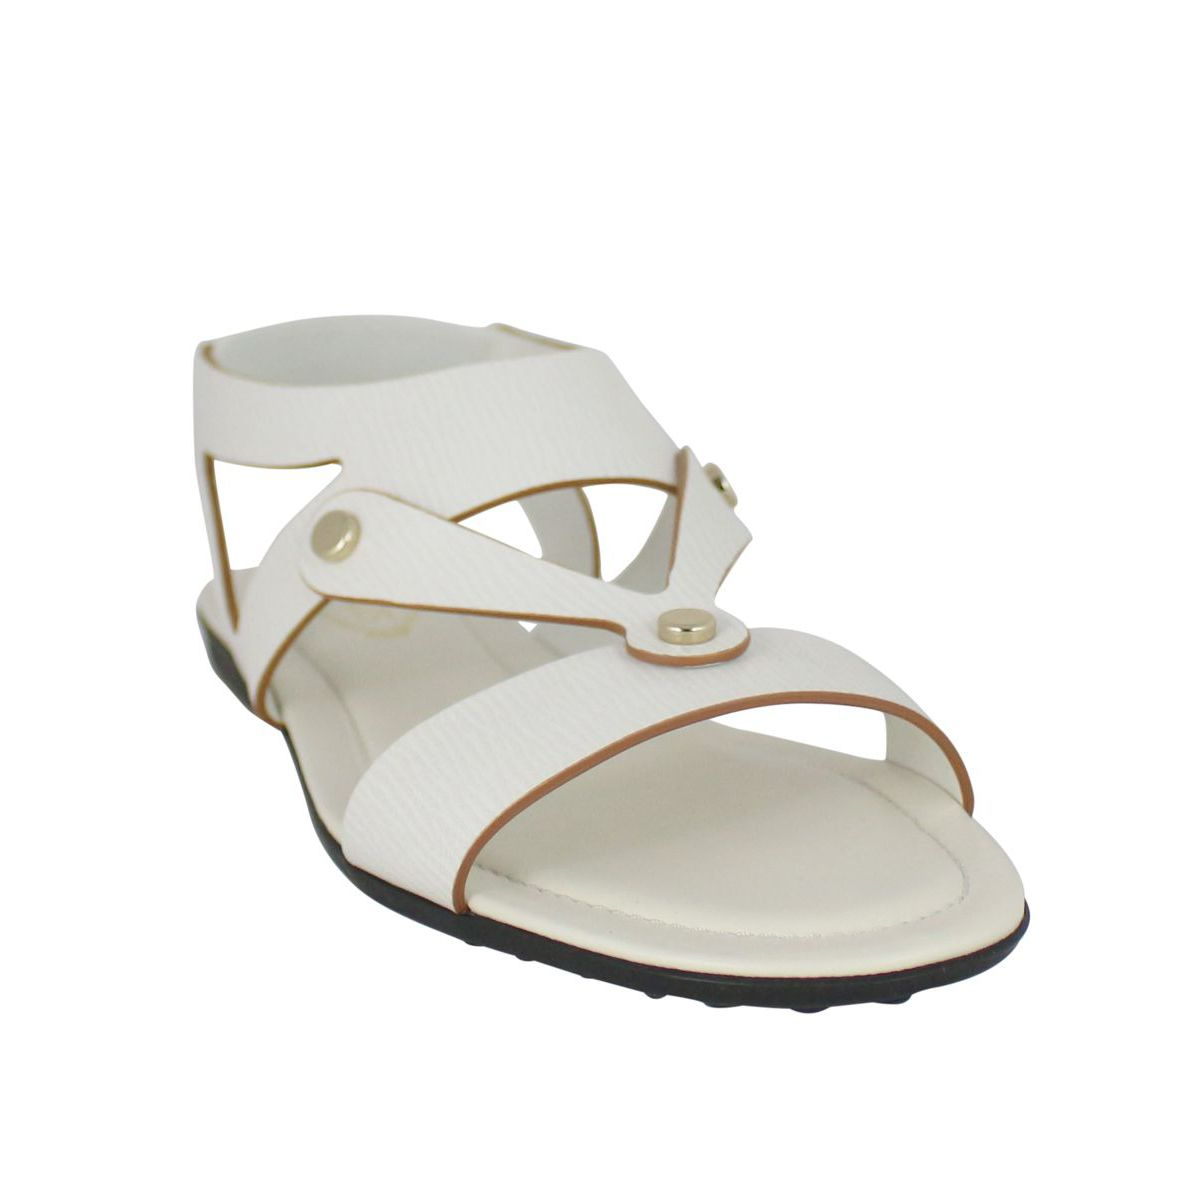 Buttons band sandal Cream Tod's